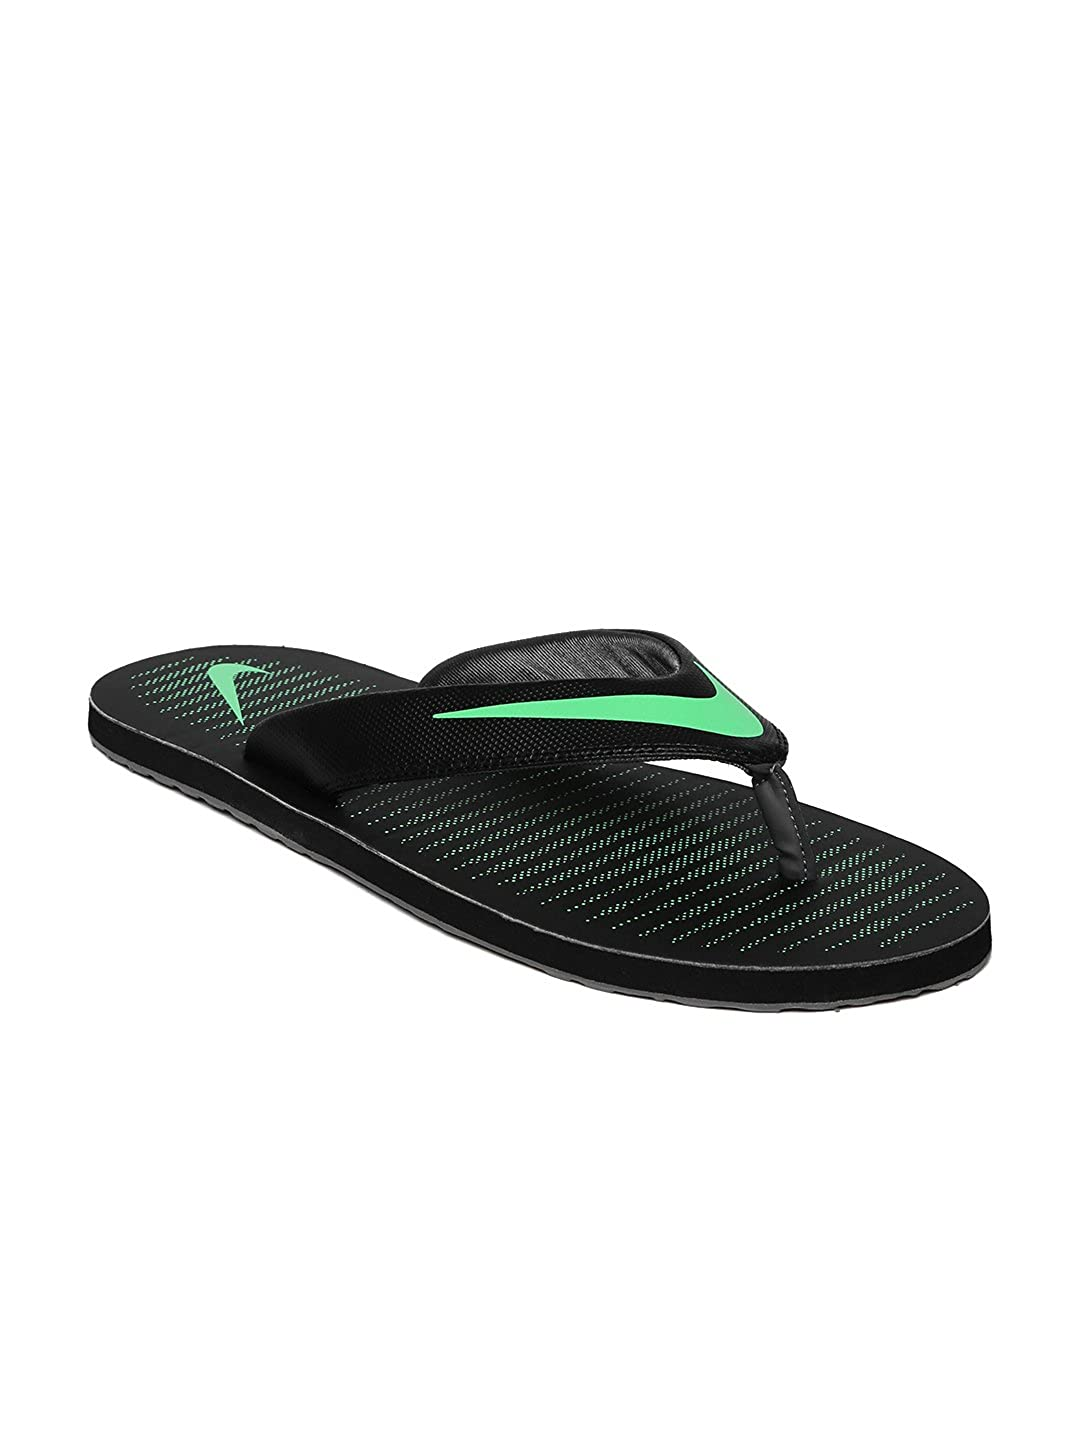 official photos 1f036 58912 Nike Chroma Thong 5 Black/Electro Green Slippers for Men